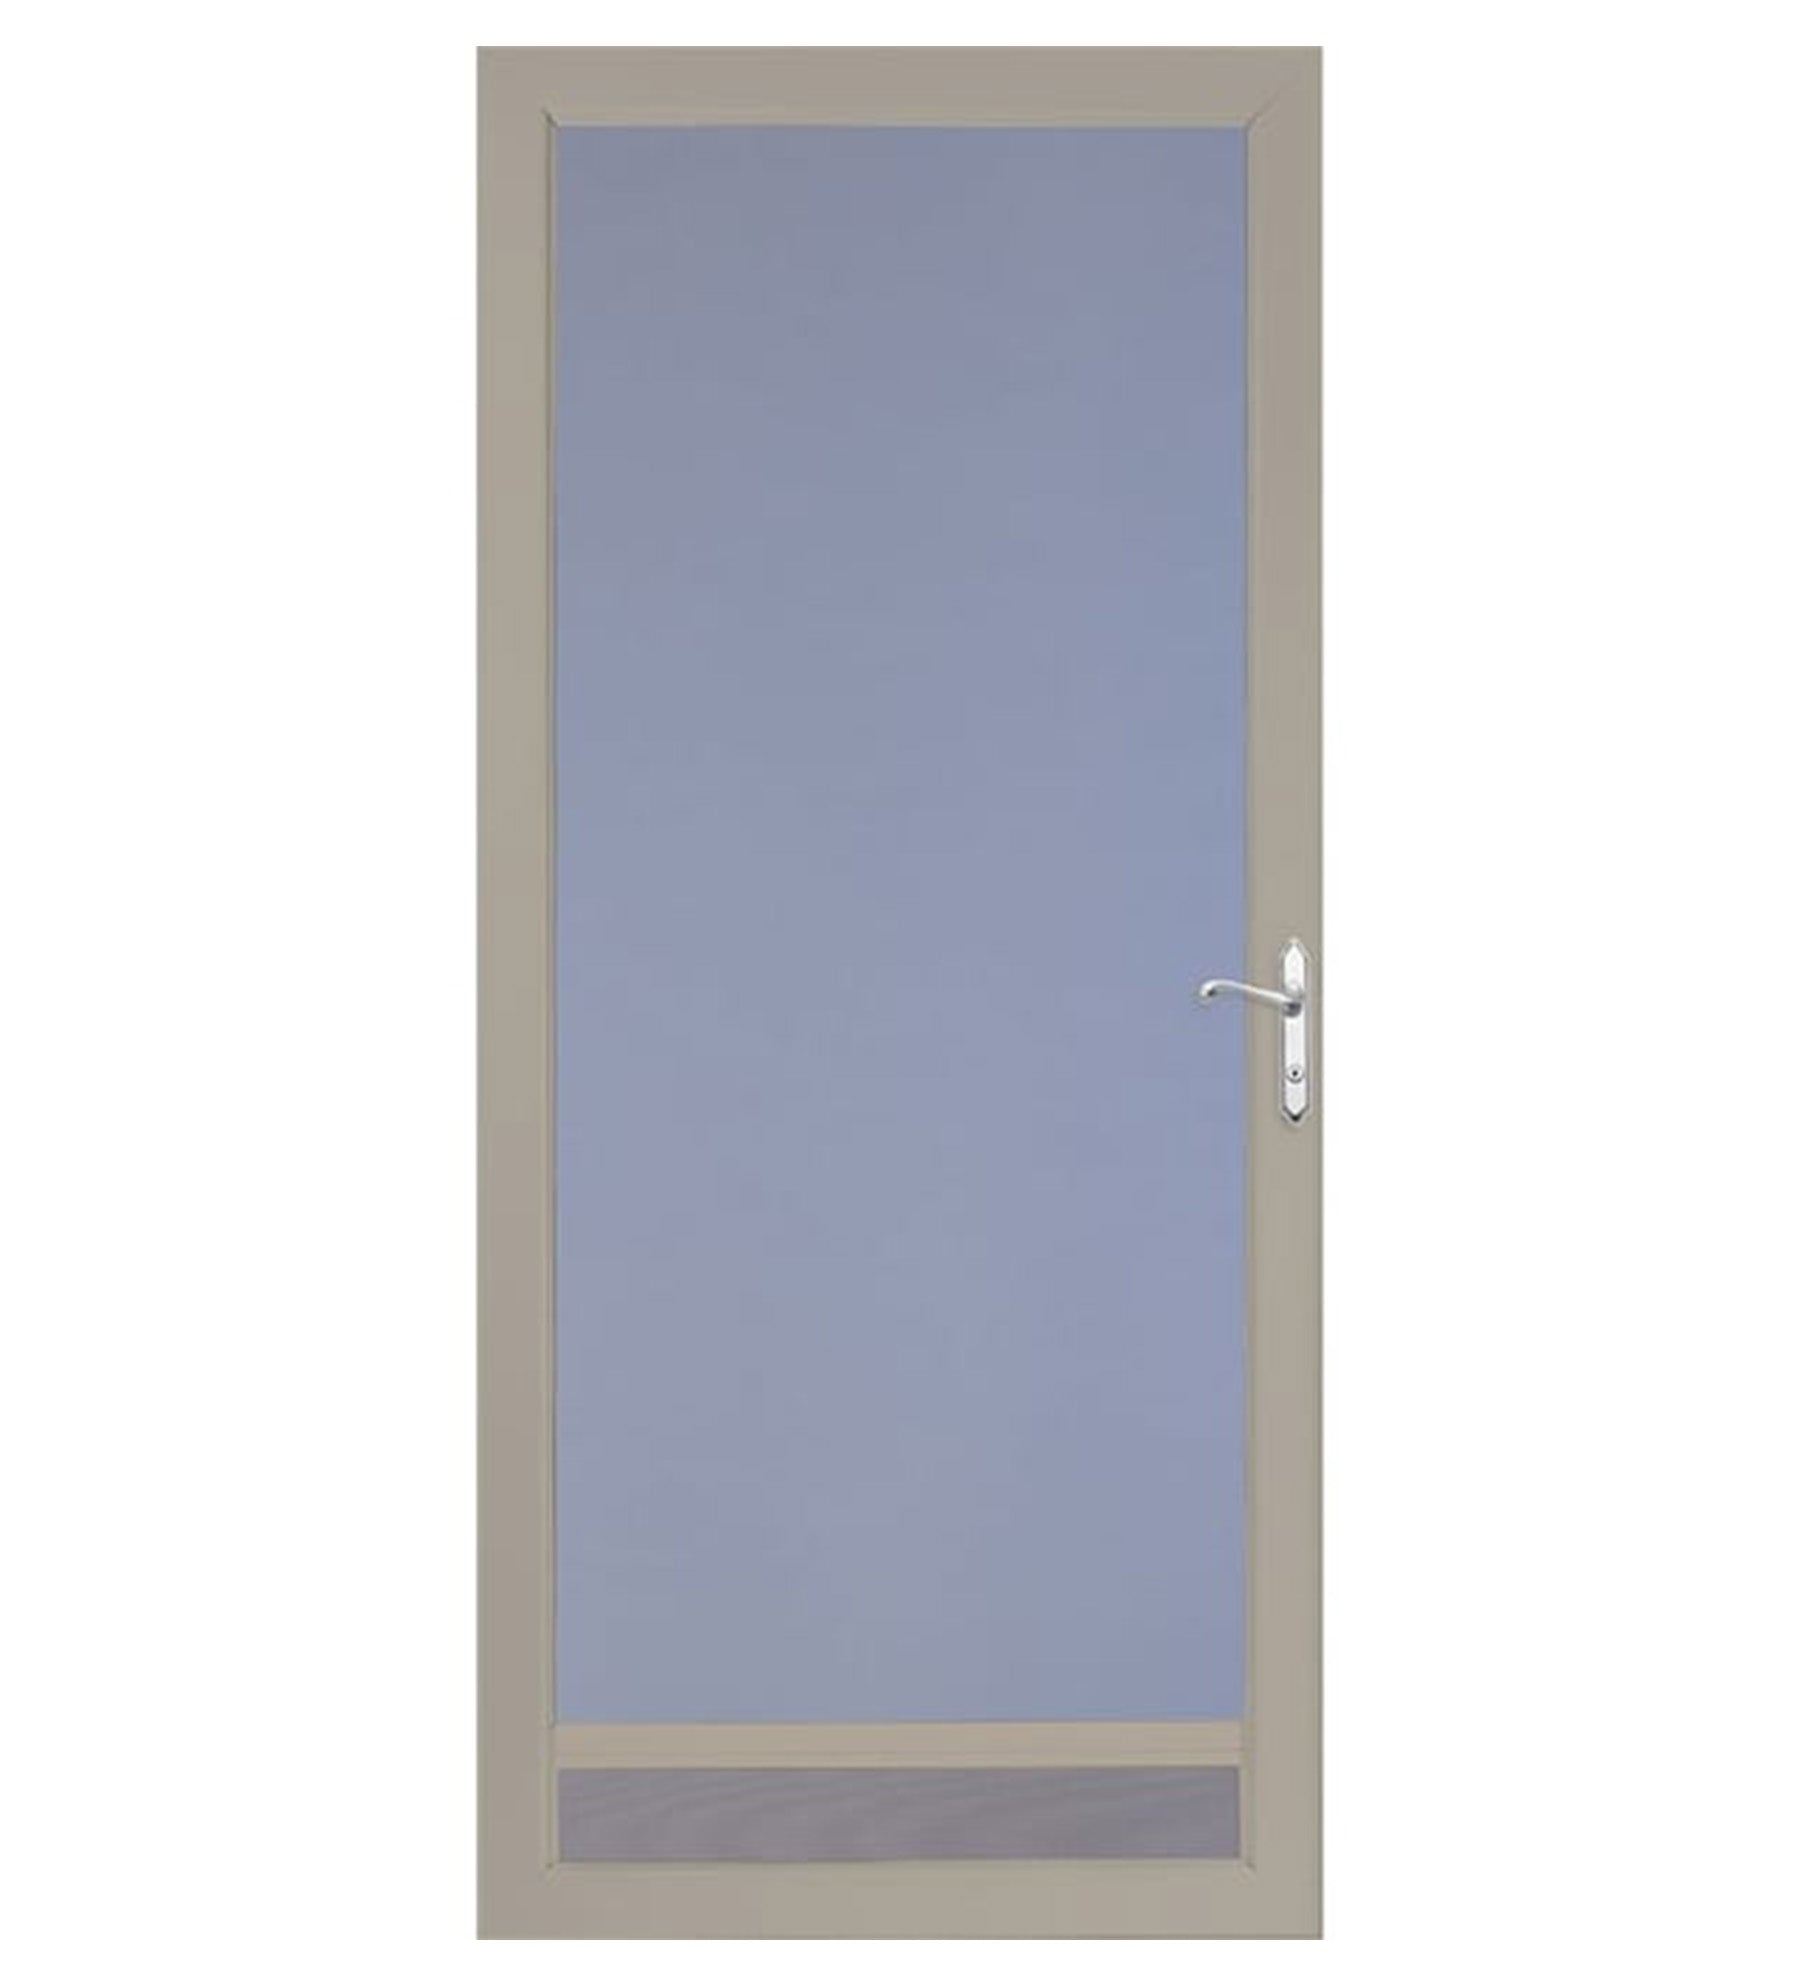 INSTALLED Larson Classic-View Bottom Vent Low-E Strom Door w/ Hardware           STARTING $589.99